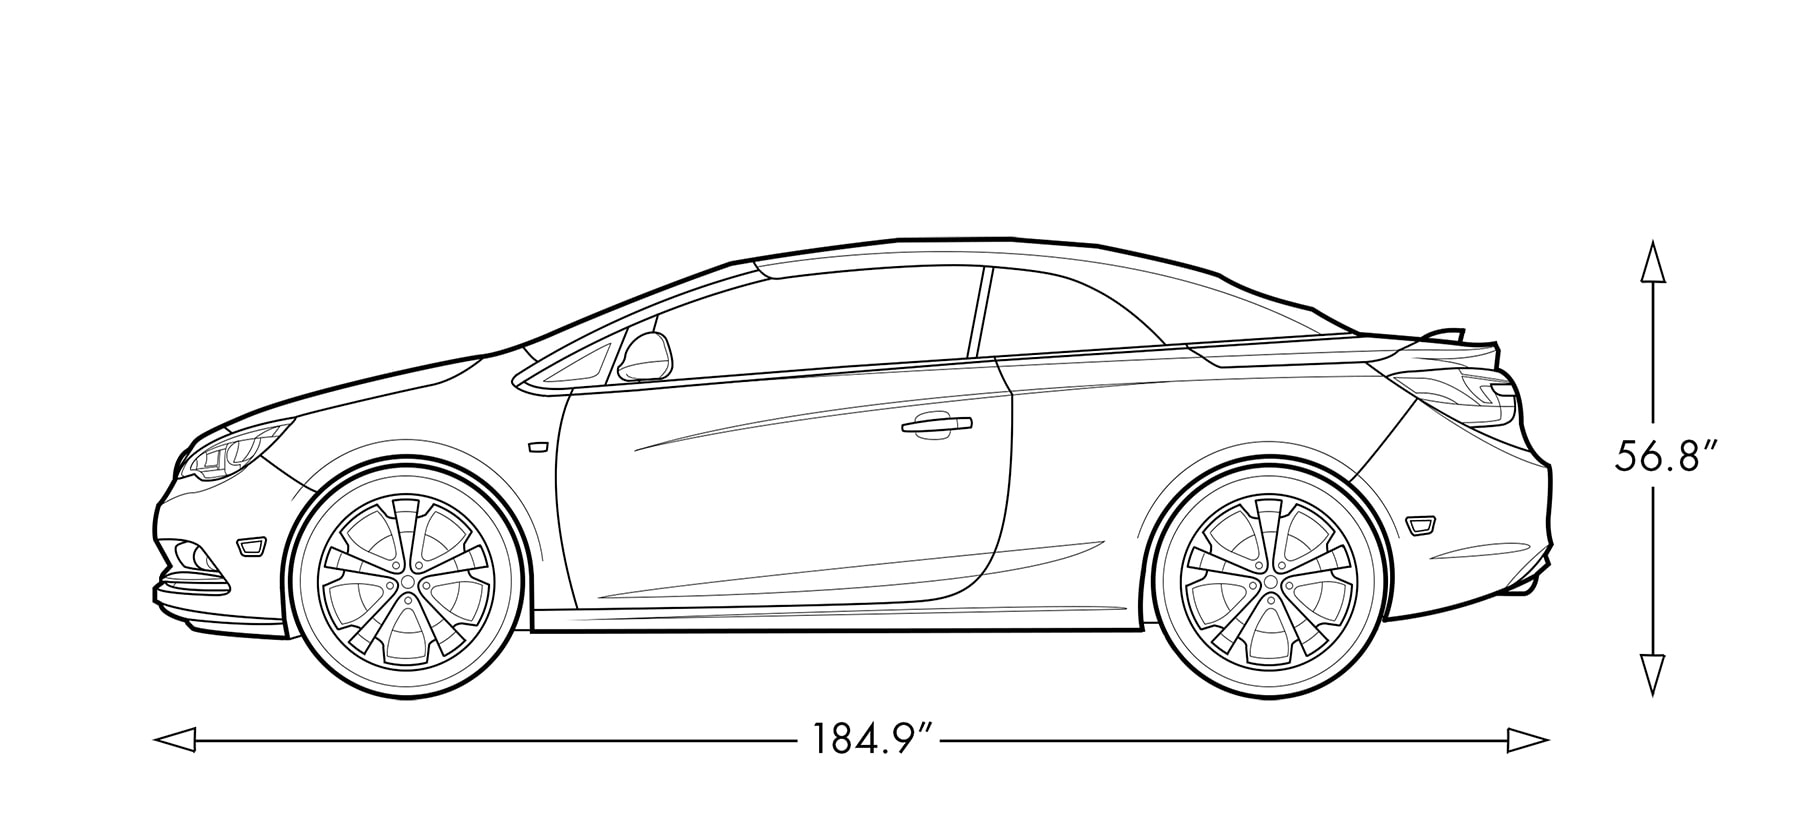 hight resolution of diagram image of the 2019 buick cascada luxury convertible